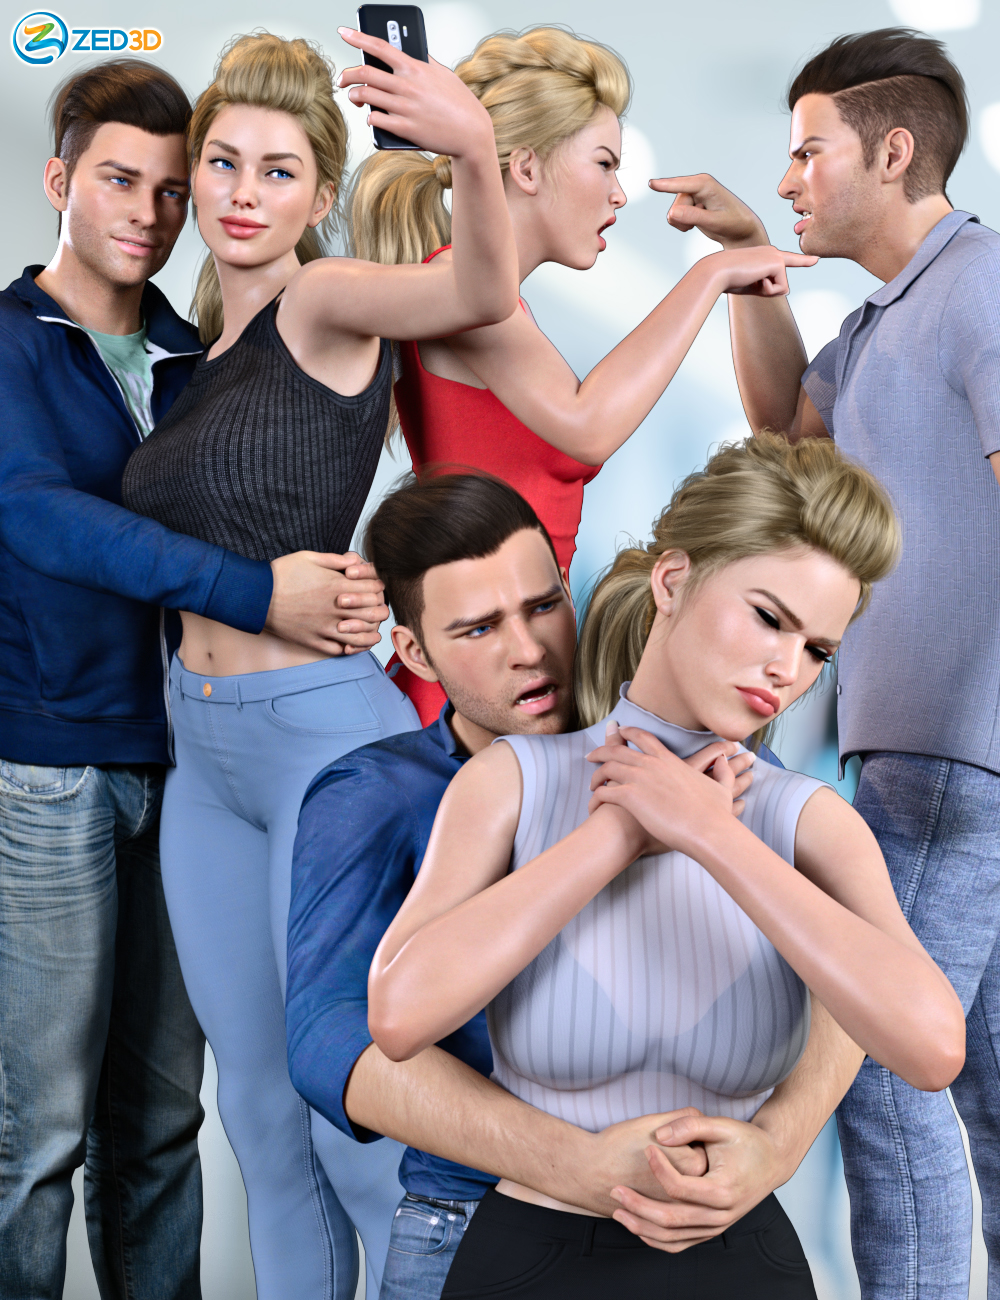 Z Everyday Couple Poses for Genesis 8 and 8.1 by: Zeddicuss, 3D Models by Daz 3D